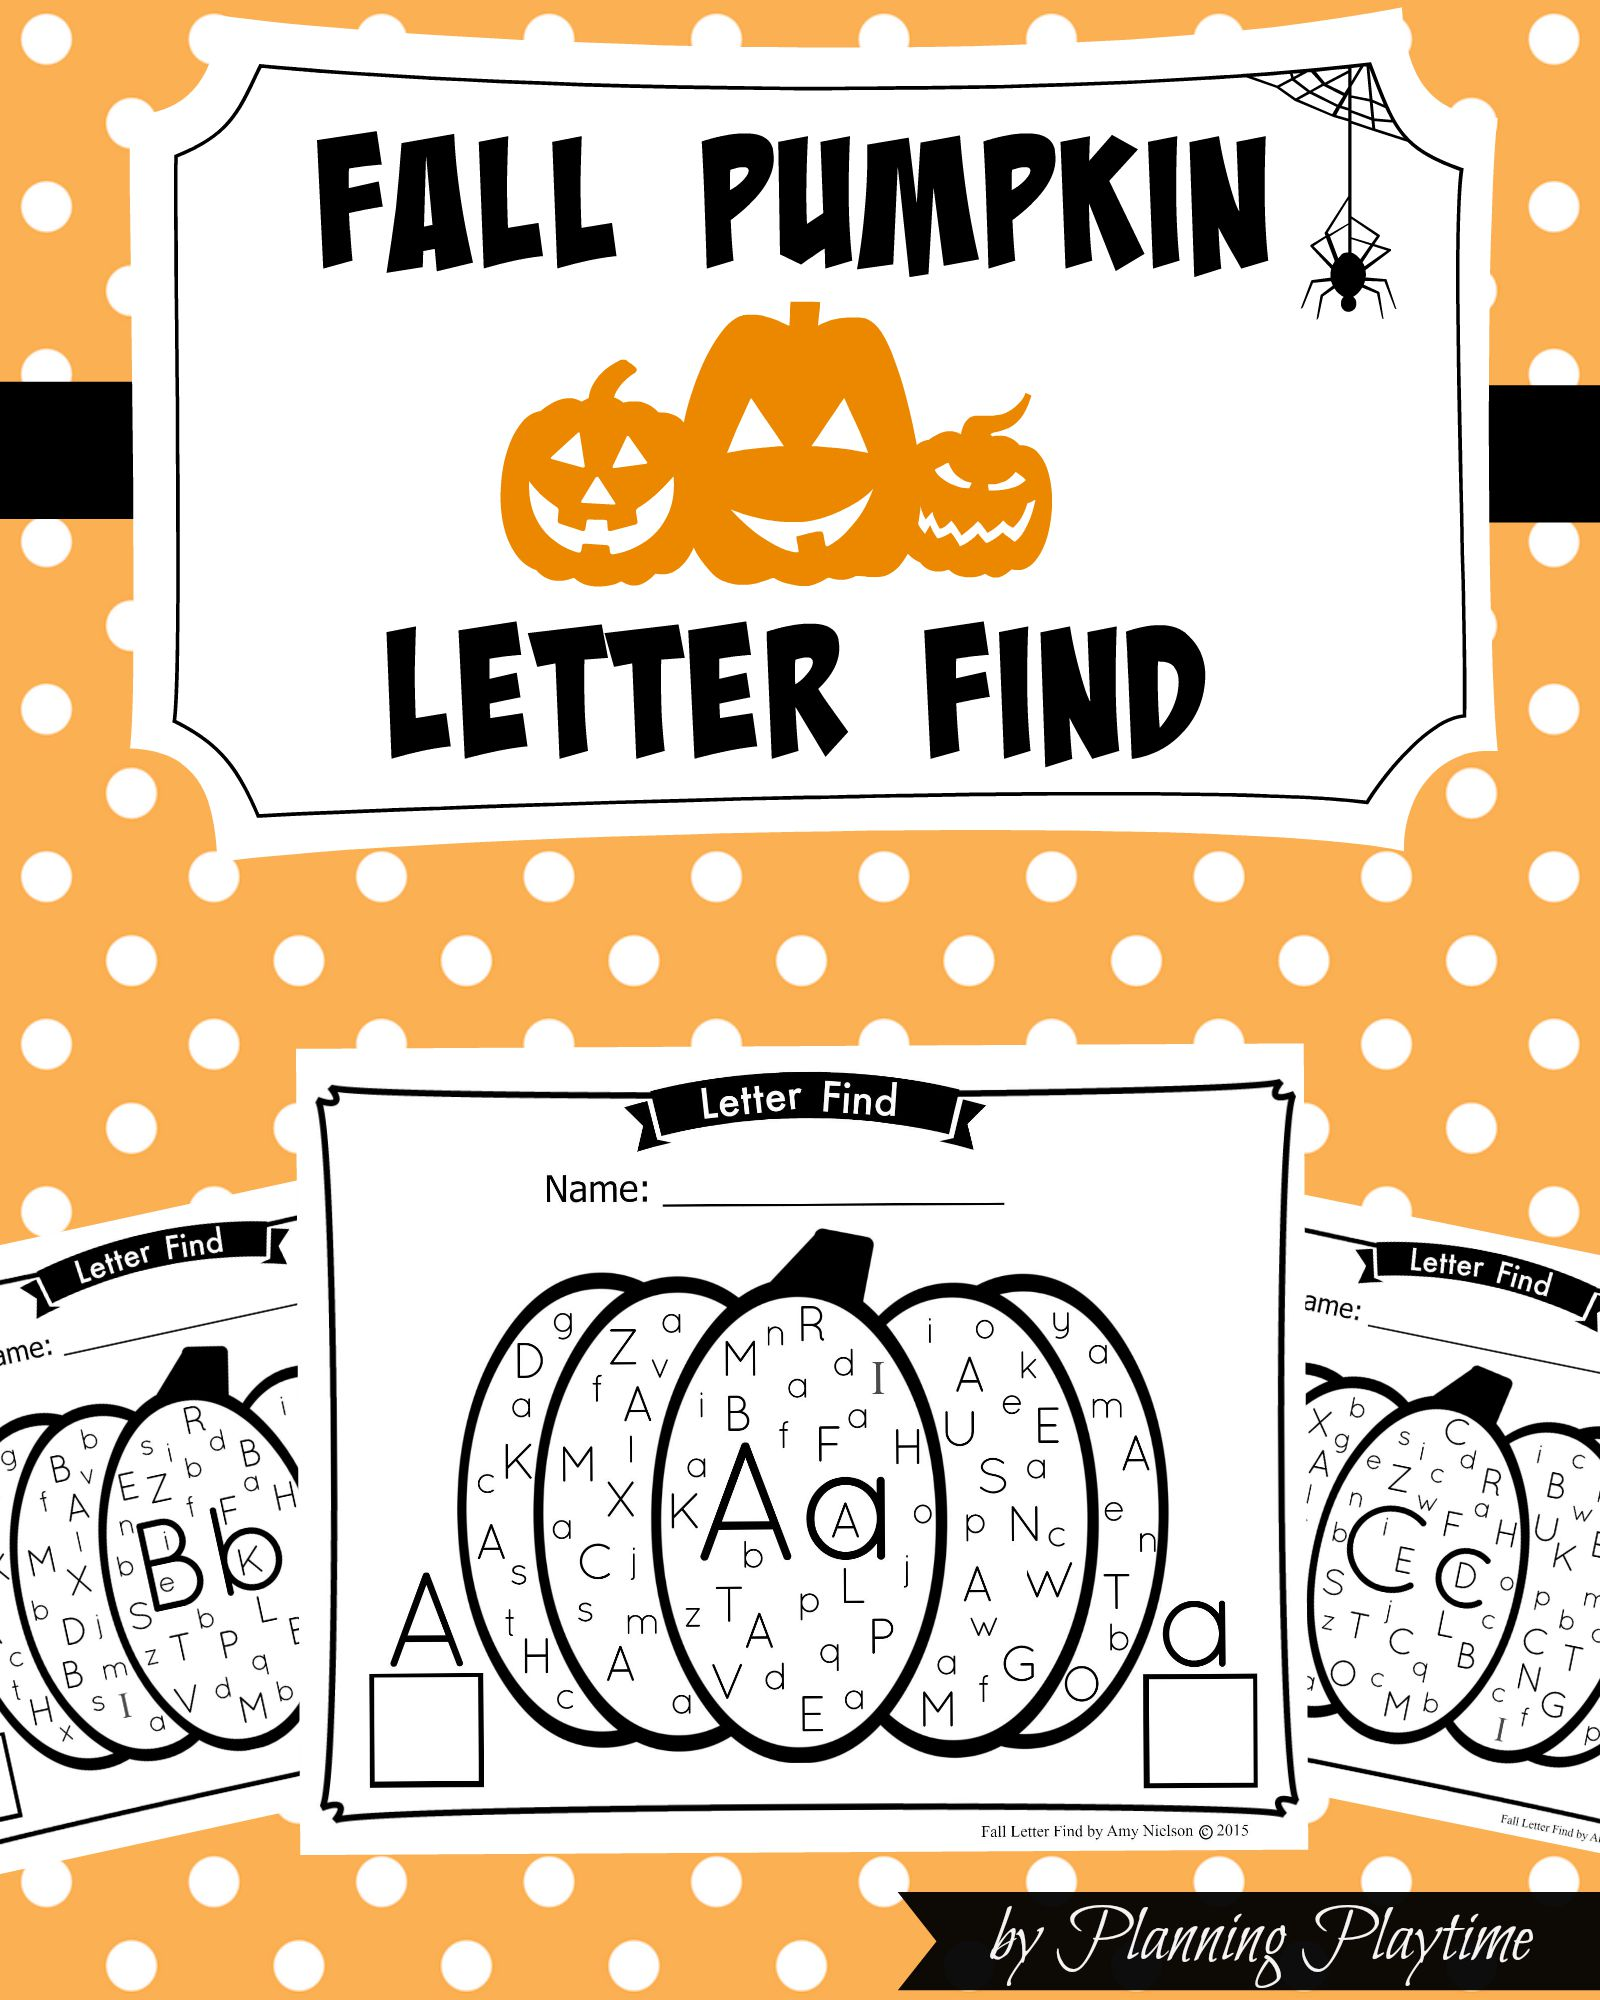 Fall Pumpkin Letter Find - Upper and lowercase by PlanningPlaytime